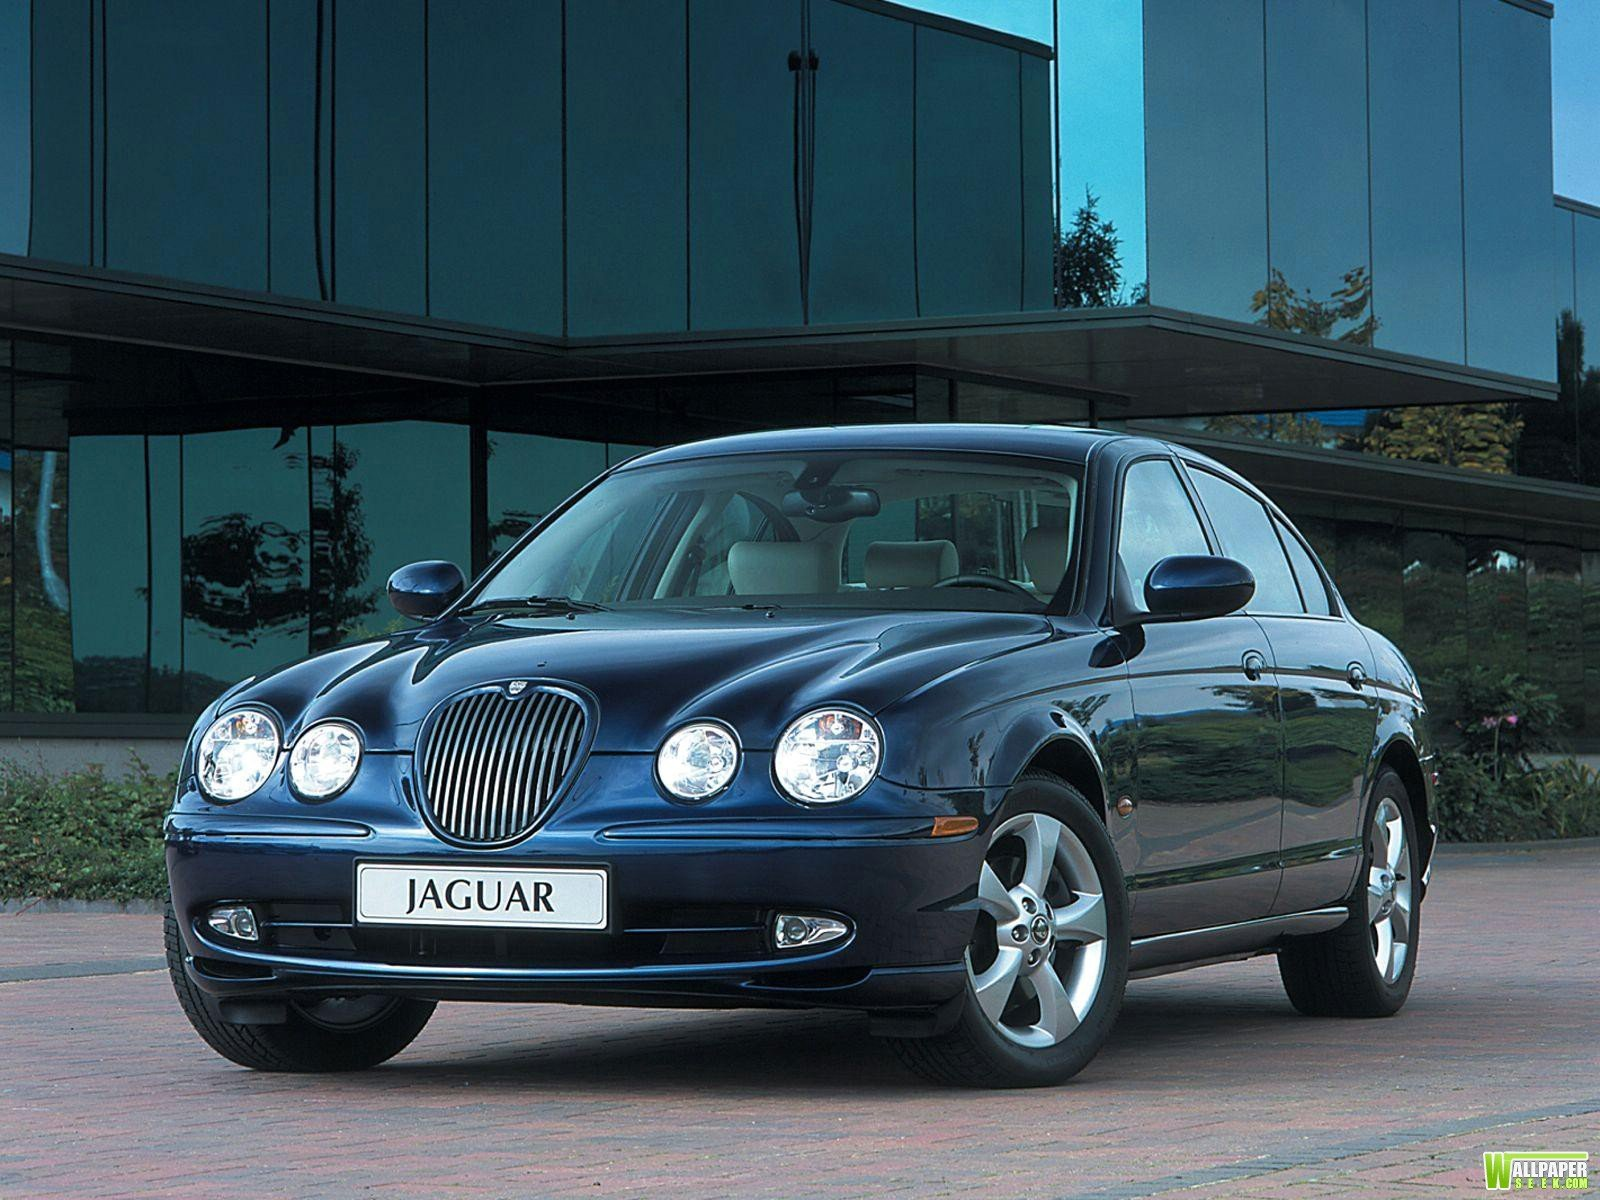 New Cars Wallpapers And Pictures Jaguar Car Wallpapers Hd On This Month